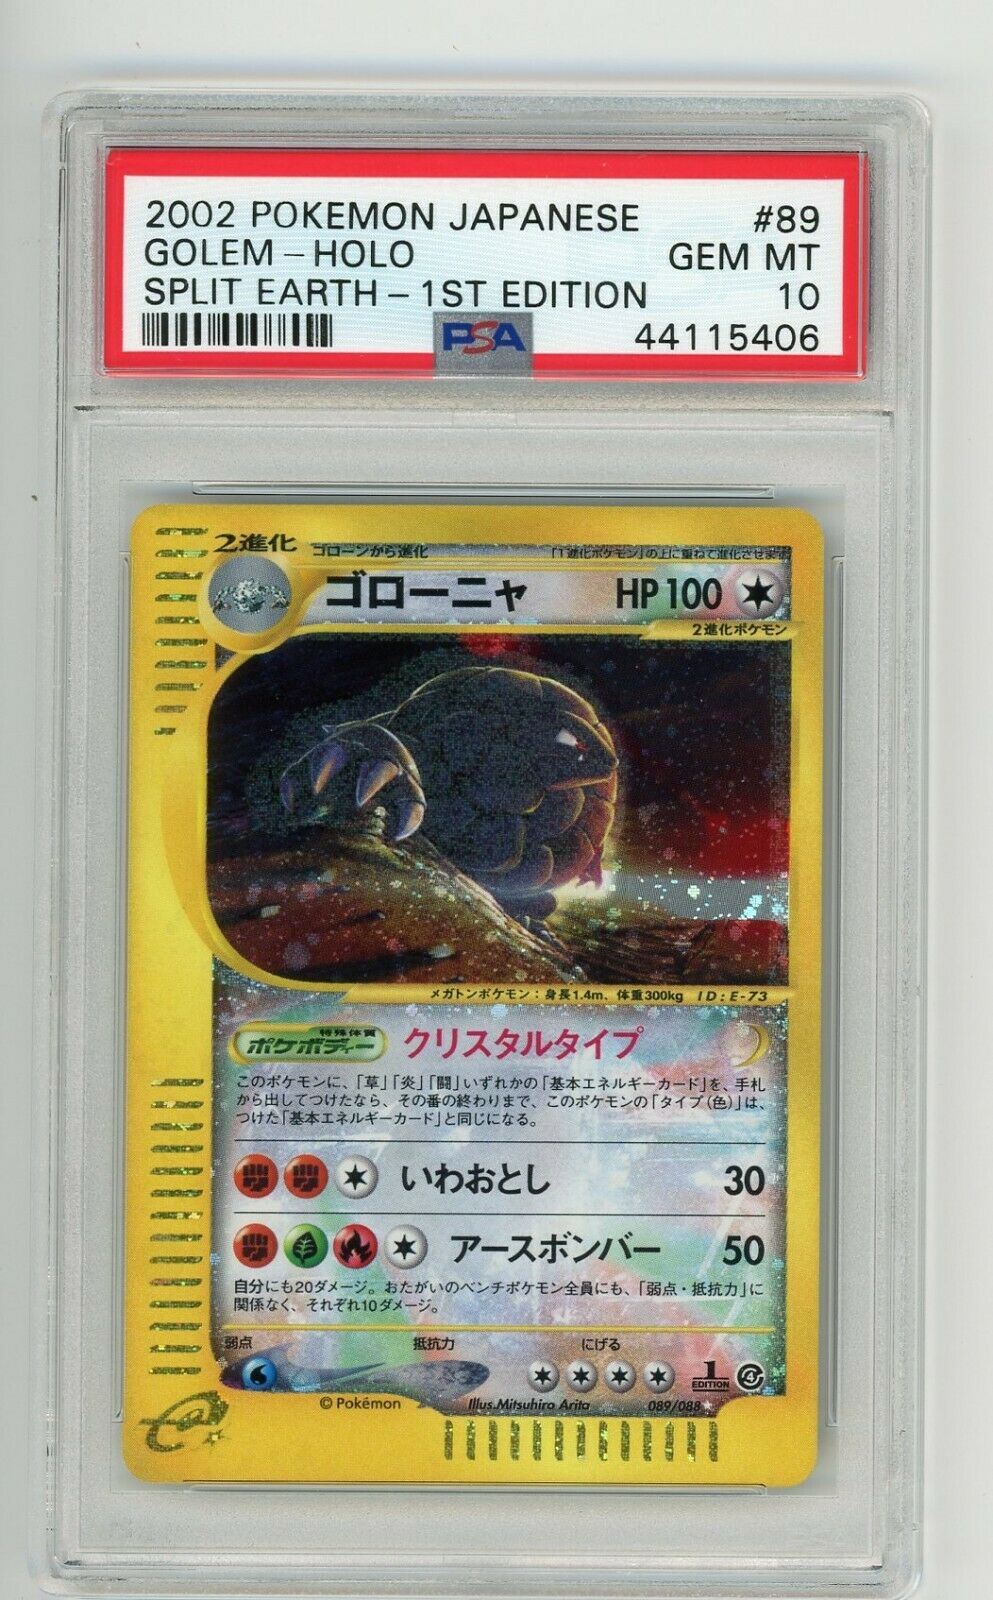 PSA 10 POKEMON JAPANESE CRYSTAL GOLEM 089 CARD 2002 1ST ED ESERIES AQUAPOLIS